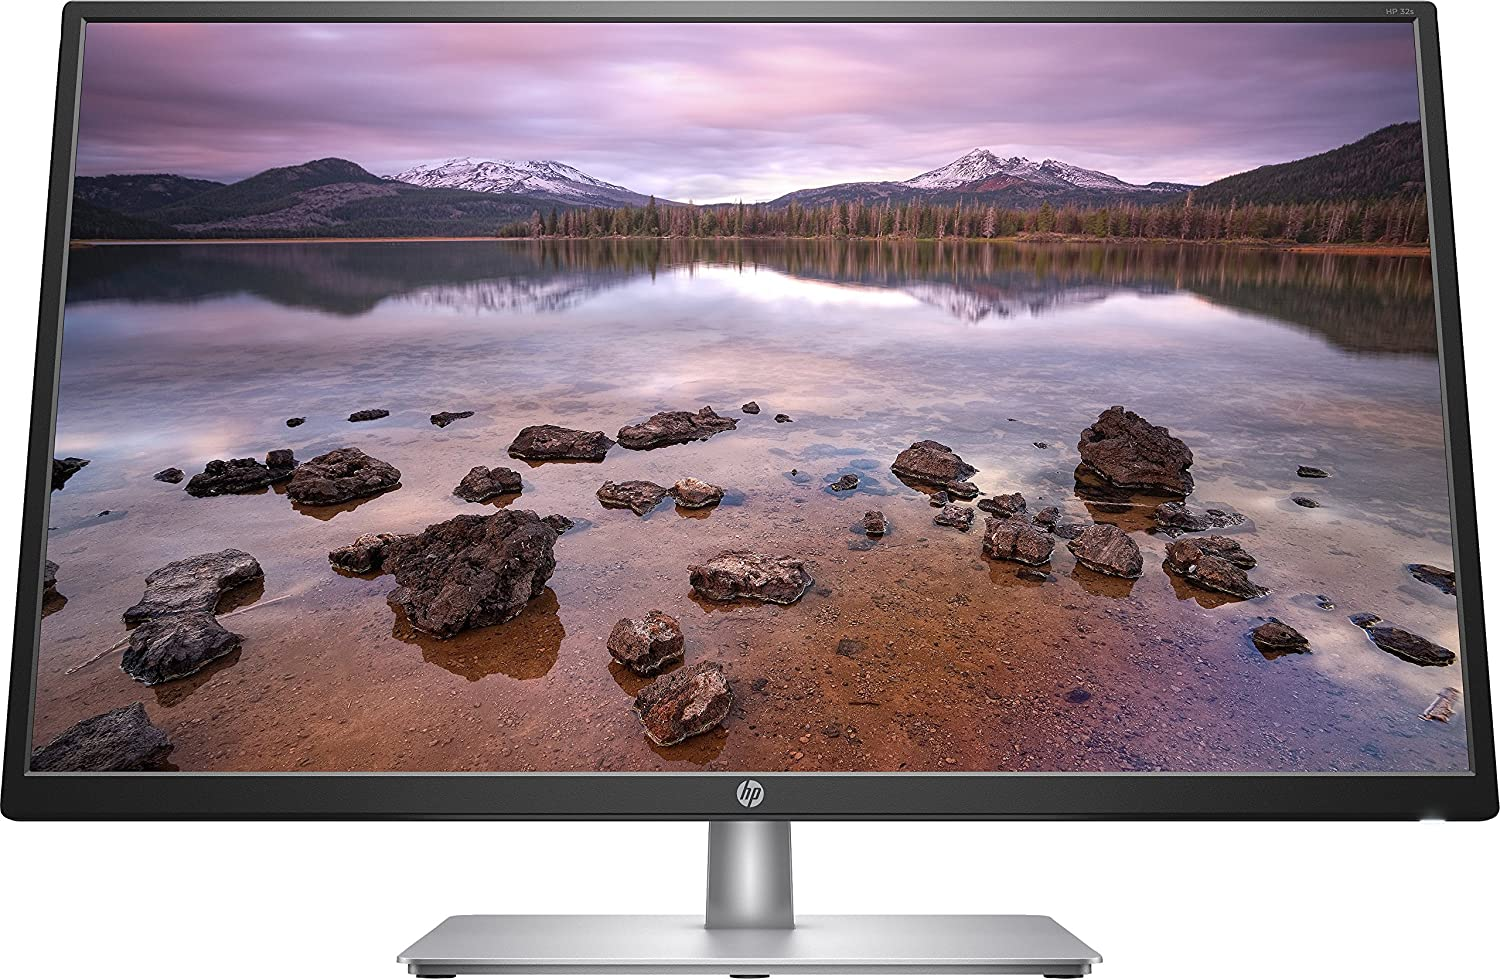 HP 32s, Monitor Fhd (IPS con Retroiluminación Led, 250 CD/M², 5 Ms Gris a Gris, 1200.1, 178°, Vga, Hdmi), 32'', Plata